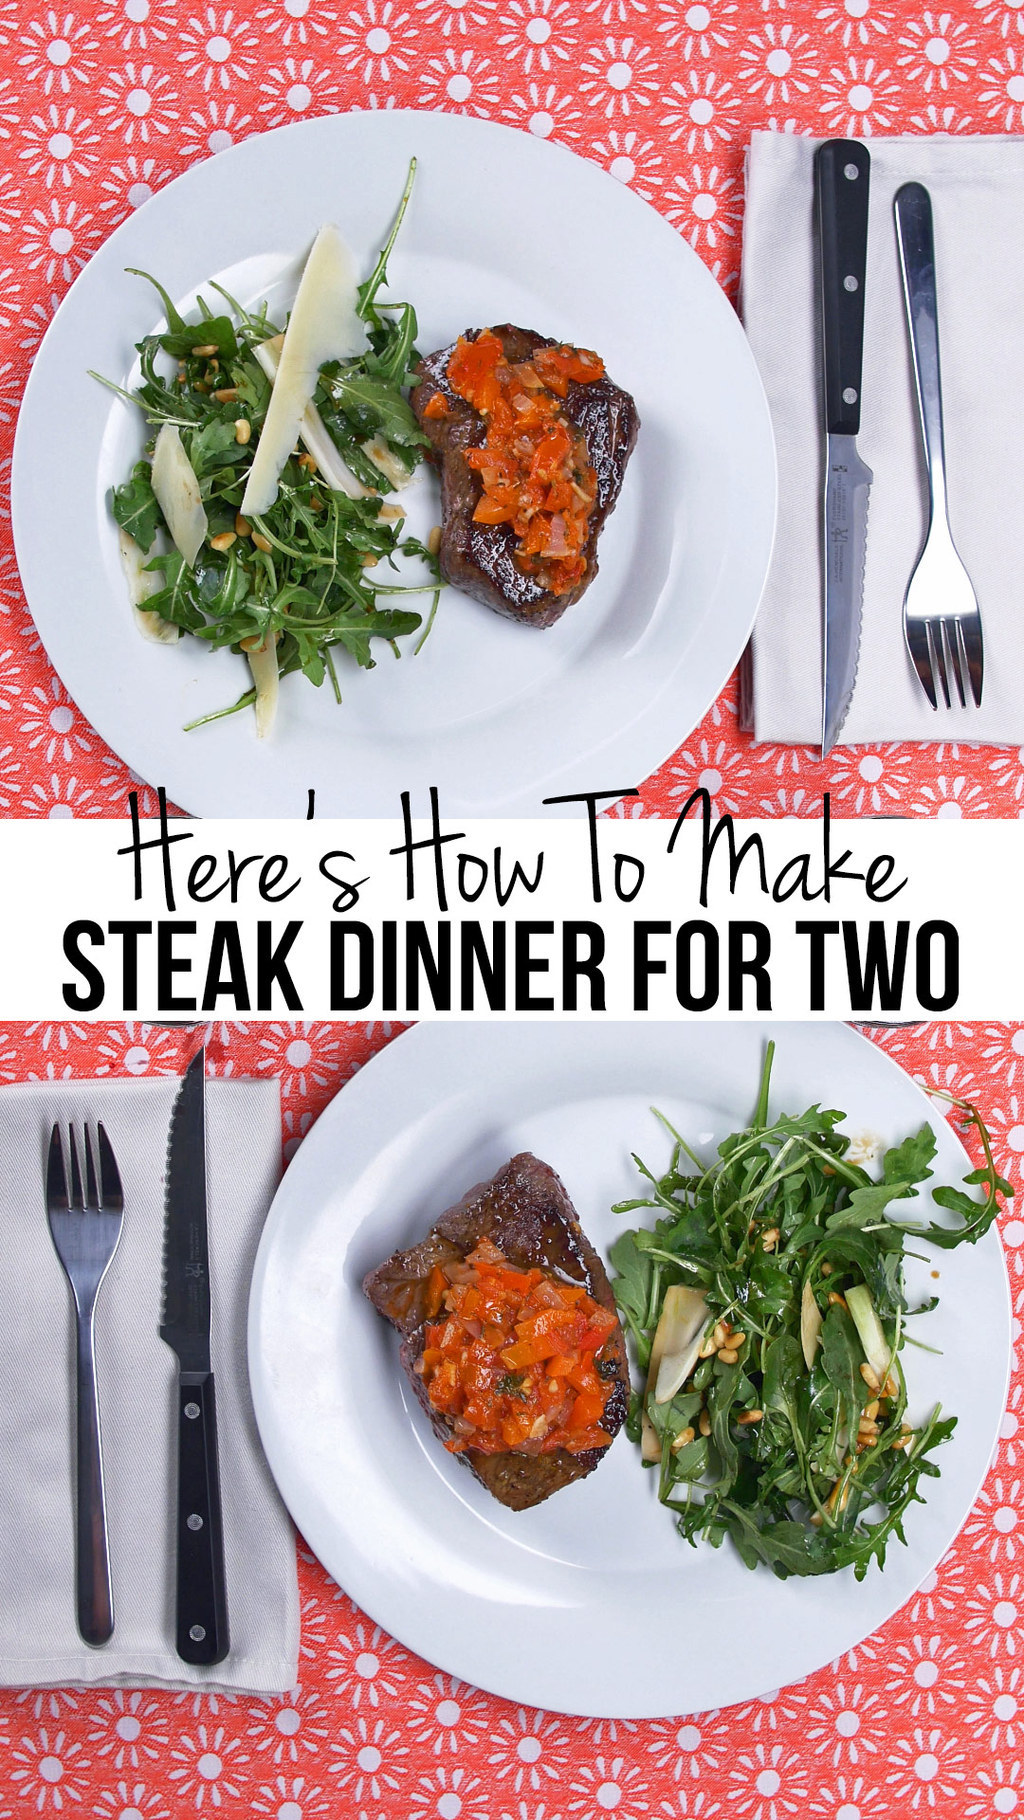 This Steak Dinner For Two Is Where It's At